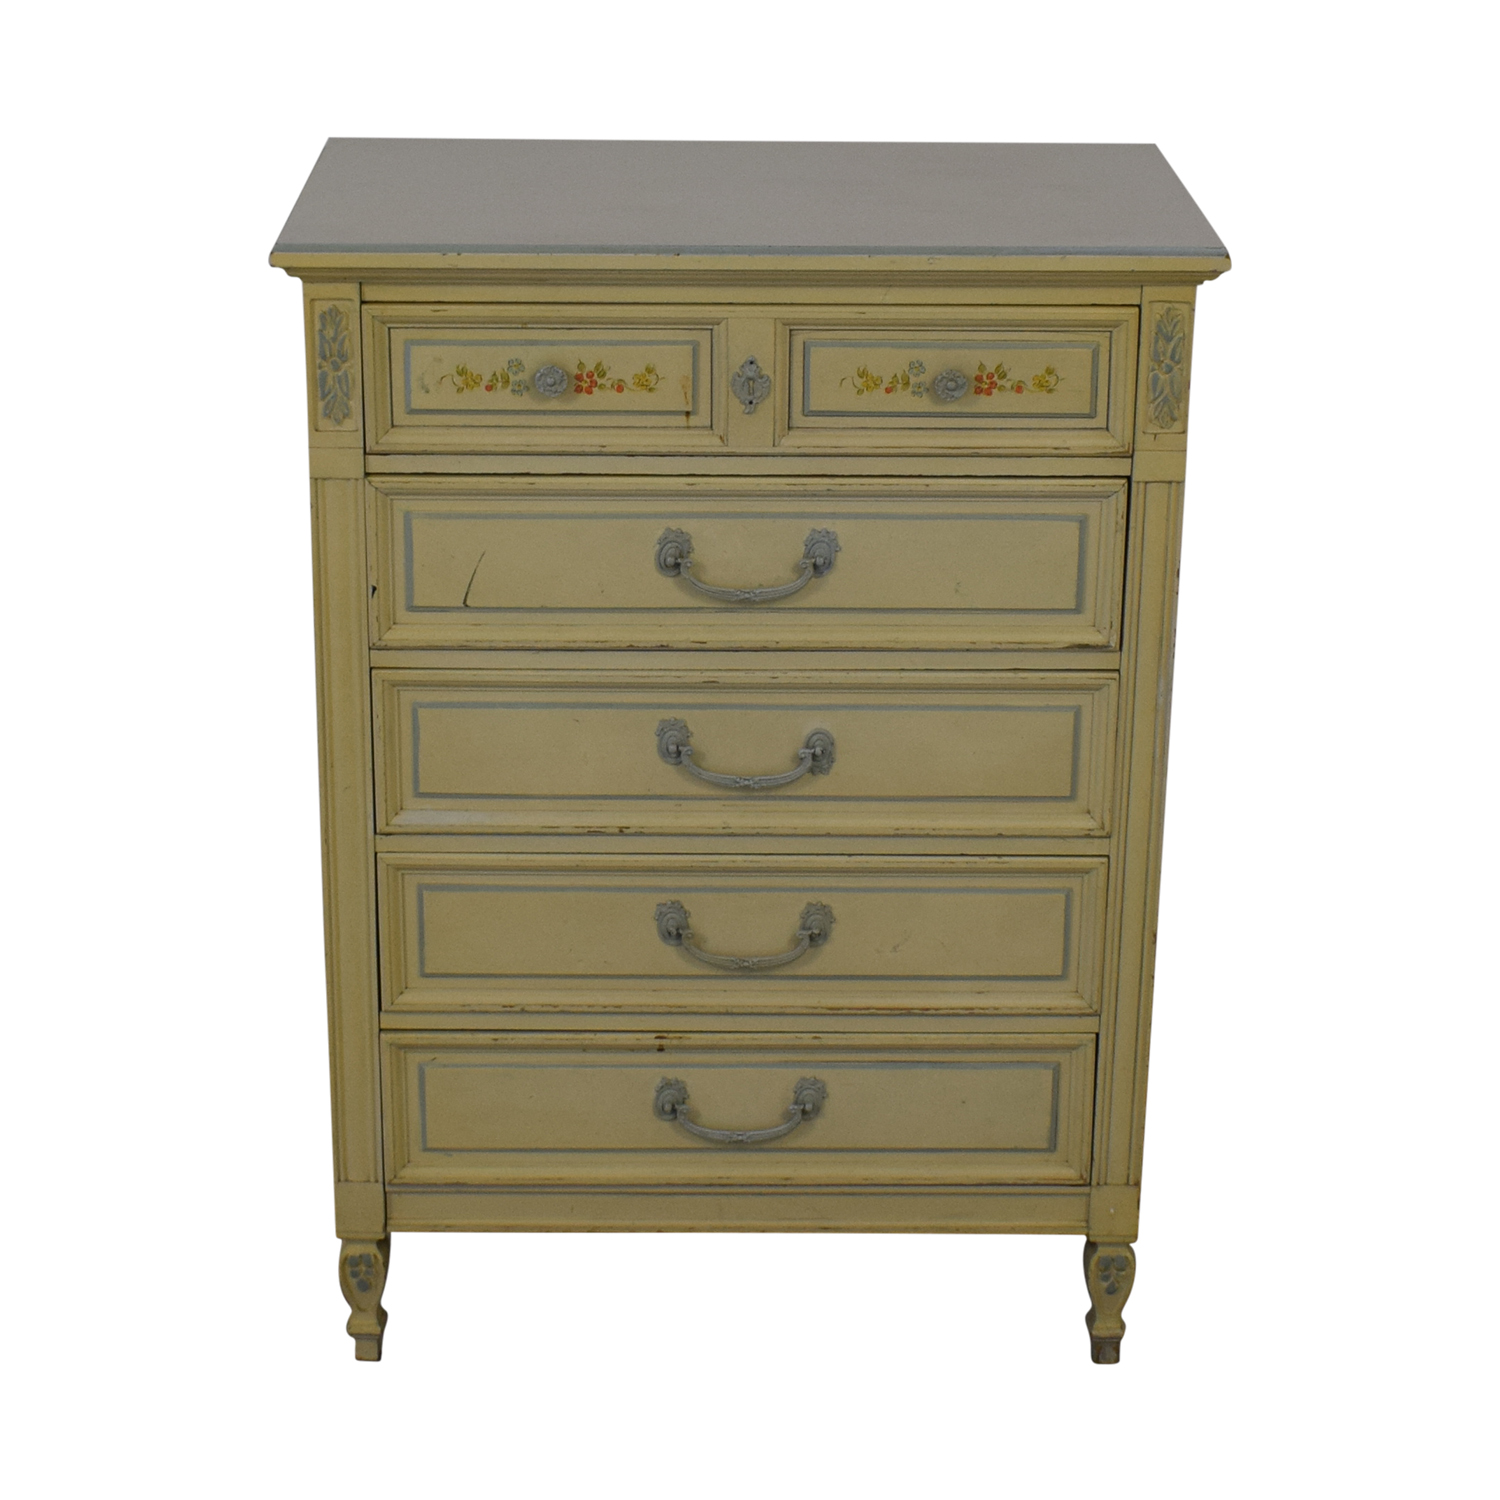 Dixie Furniture Company Dixie Furniture Company Victorian Five-Drawer Dresser second hand